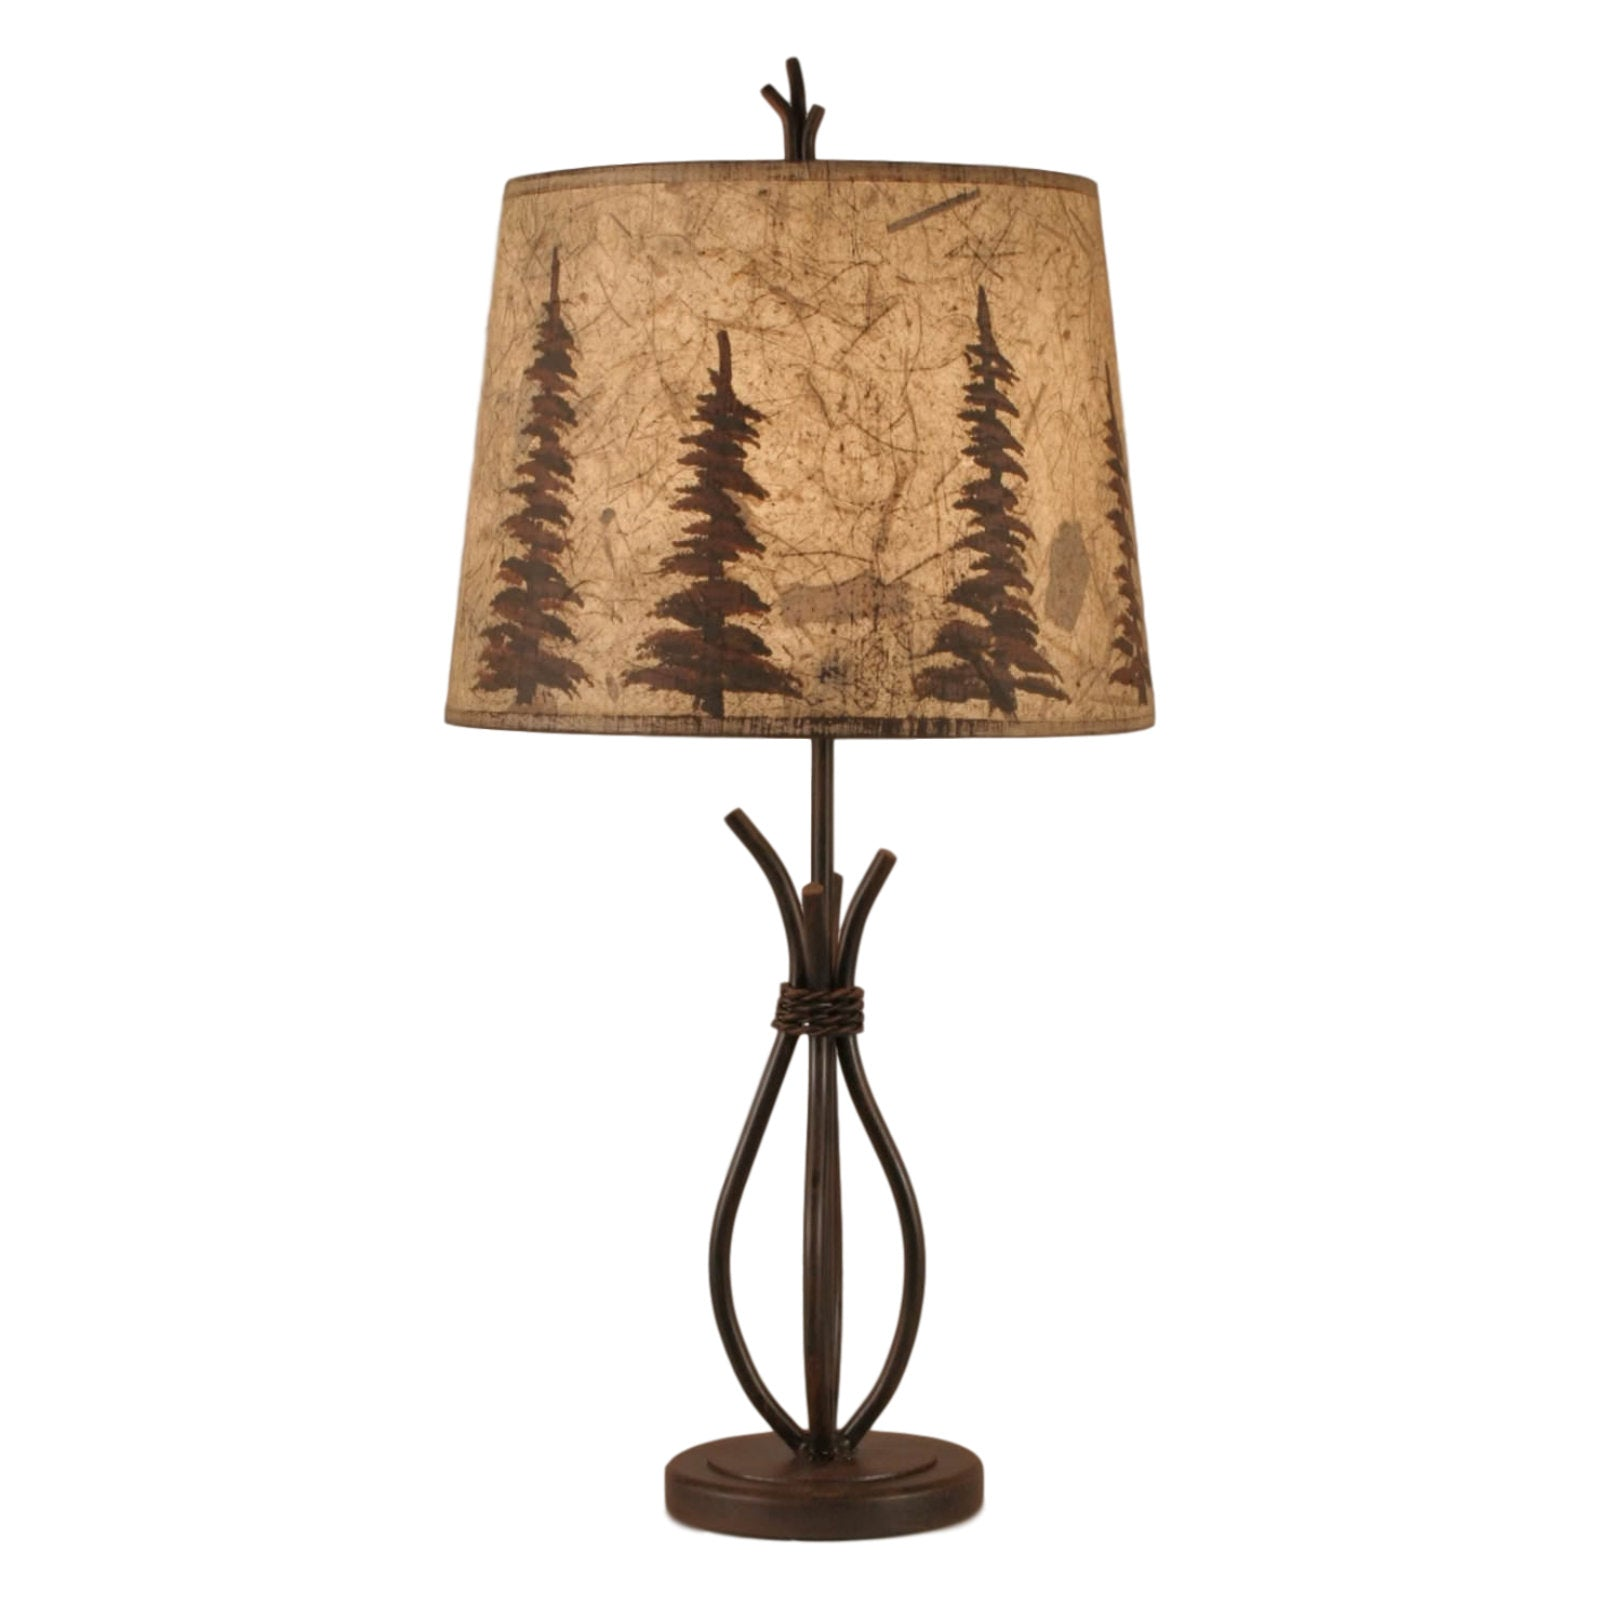 Braided Wire Pine Tree Table Lamp